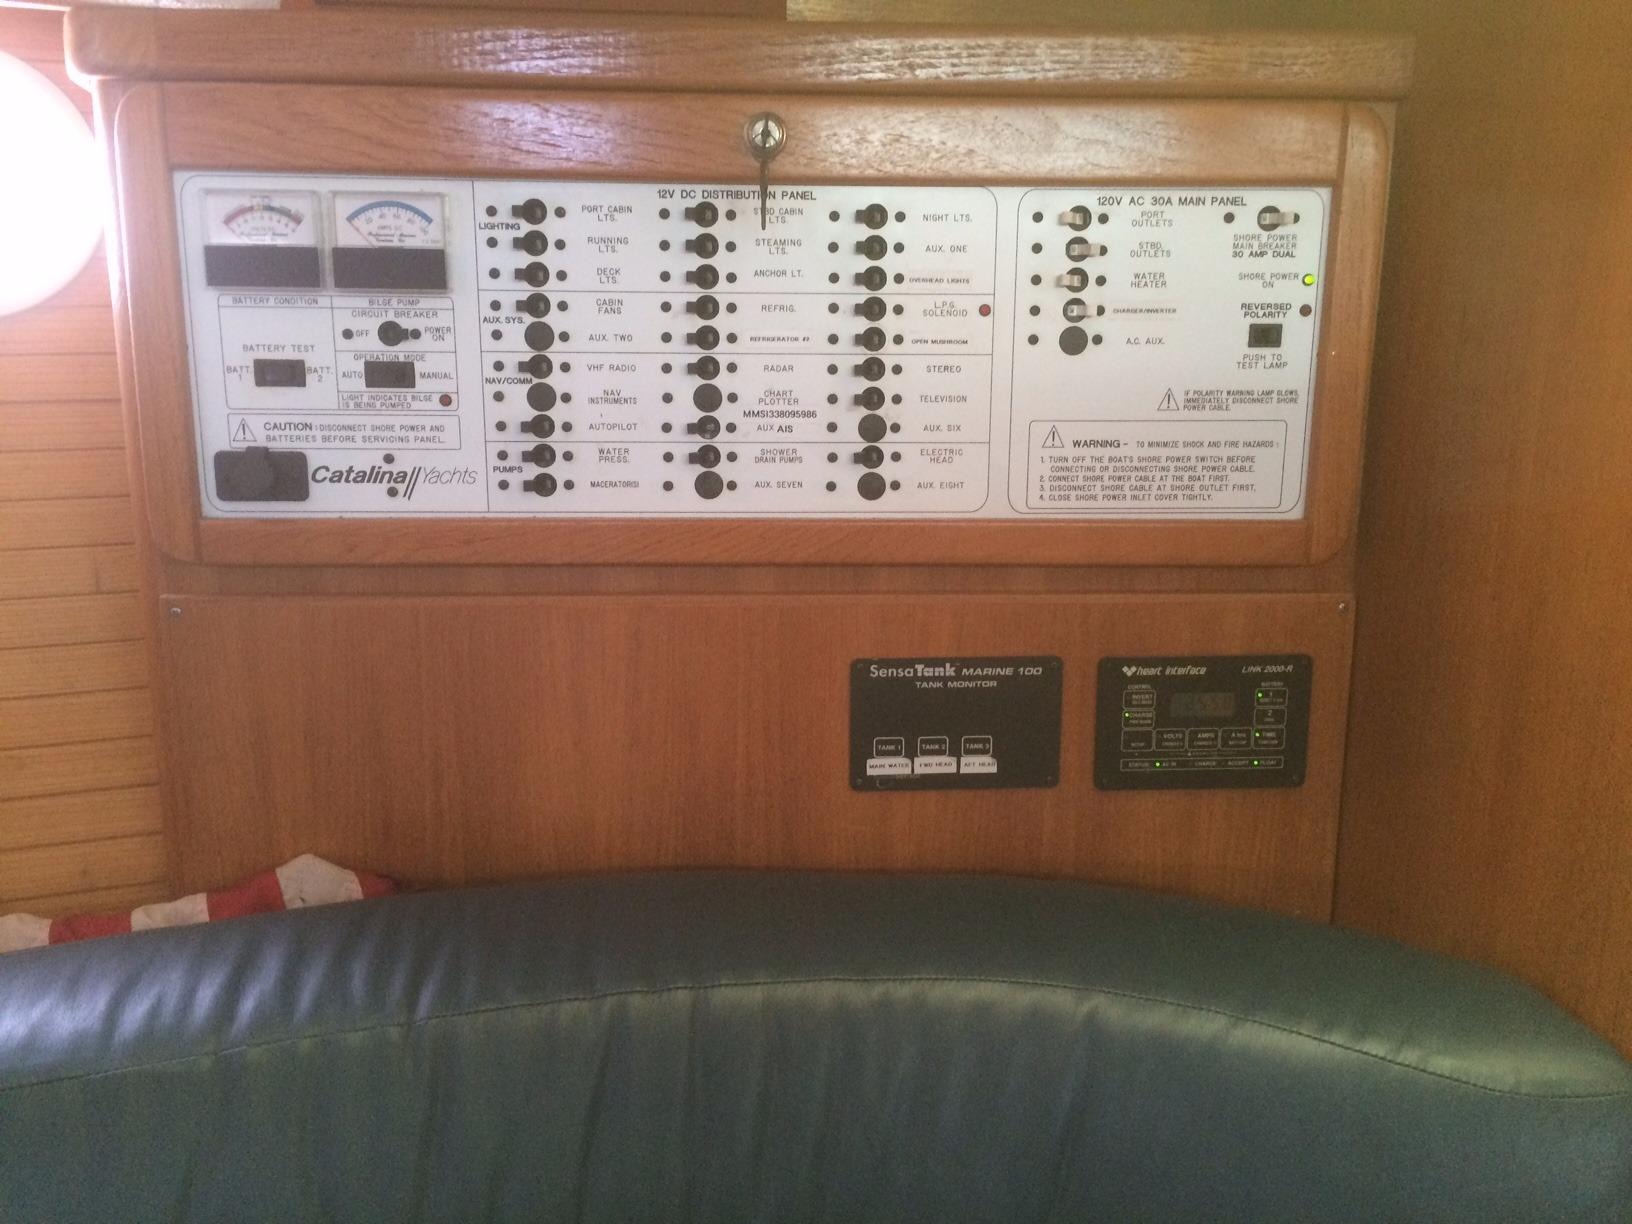 Catalina 42 Wiring Diagram Electrical Diagrams 27 2000 Celerity Long Beach California Sold On 2018 06 04 40 Sailboat